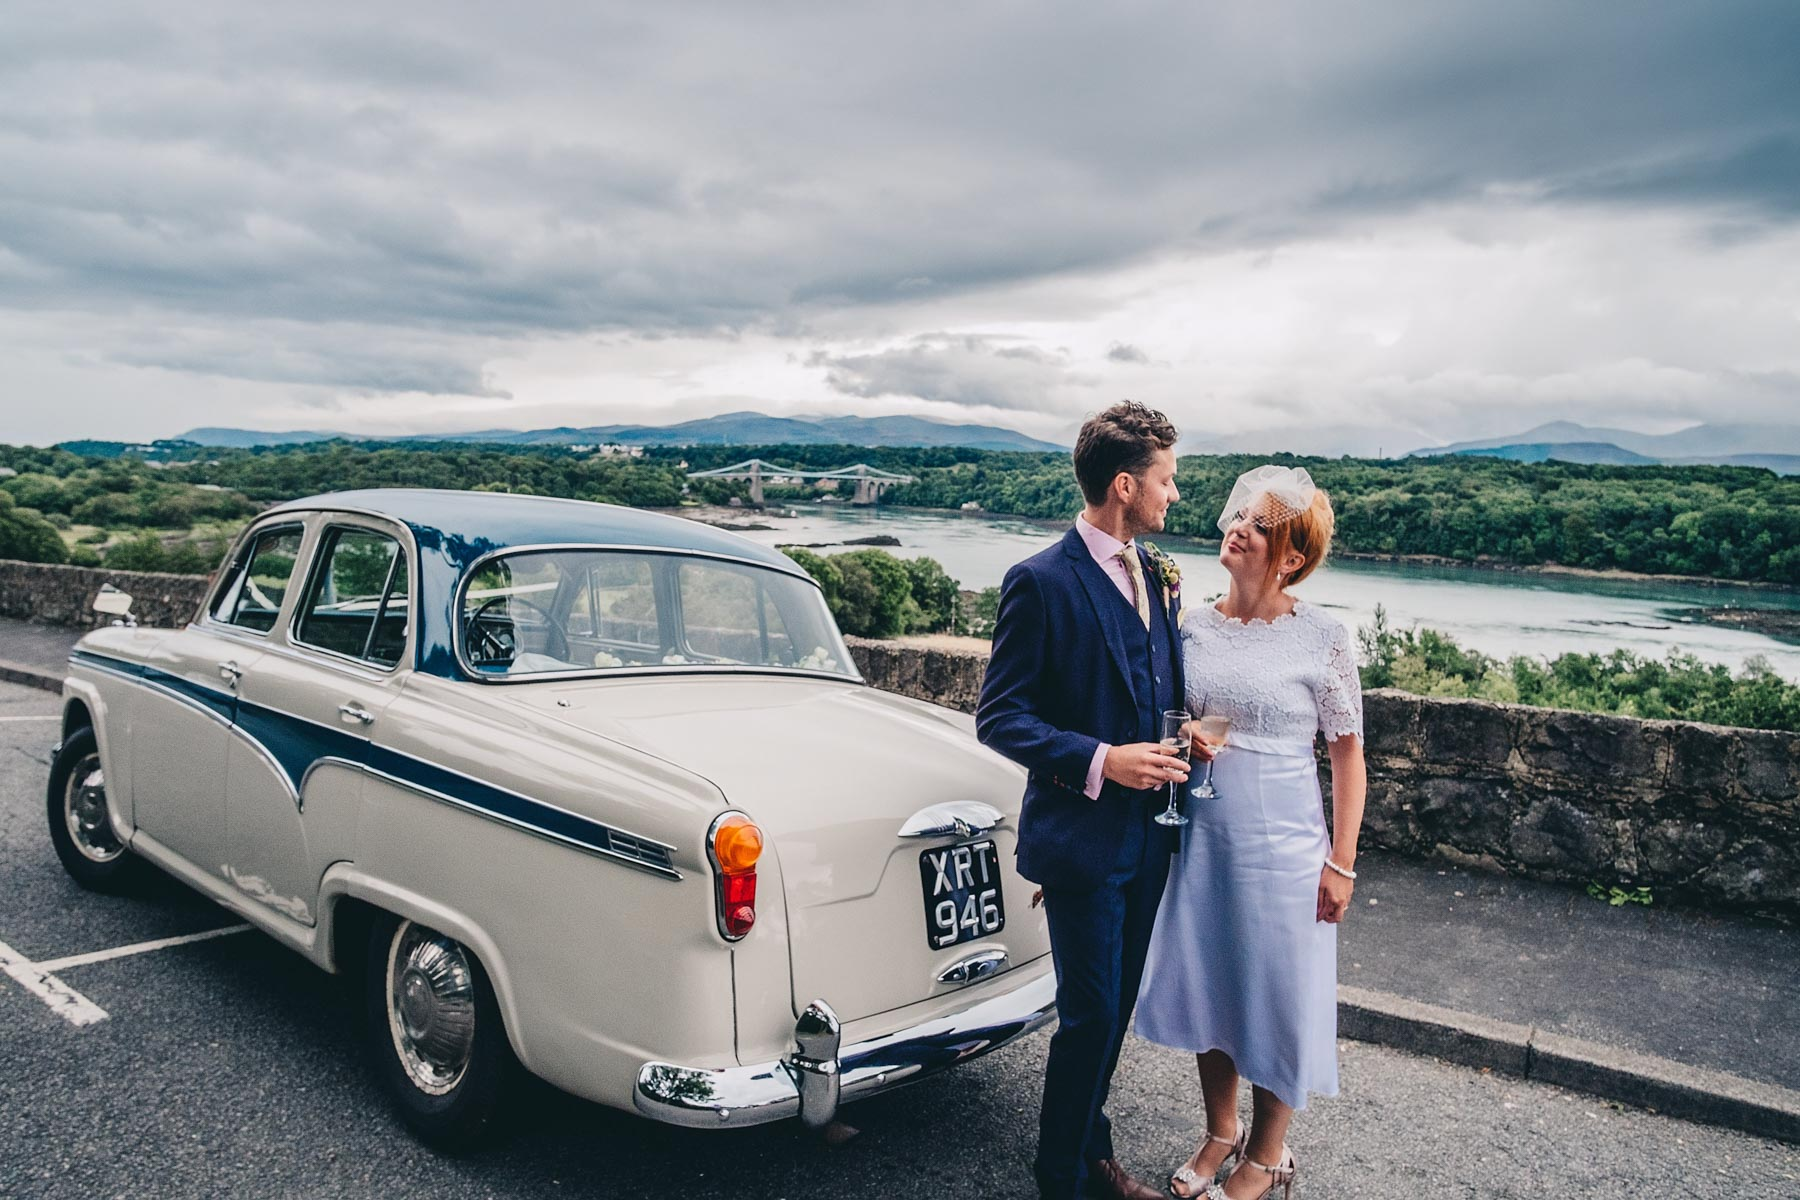 Bride and groom pose next to 1950's car next to The Menai Bridge Viewpoint in North Wales